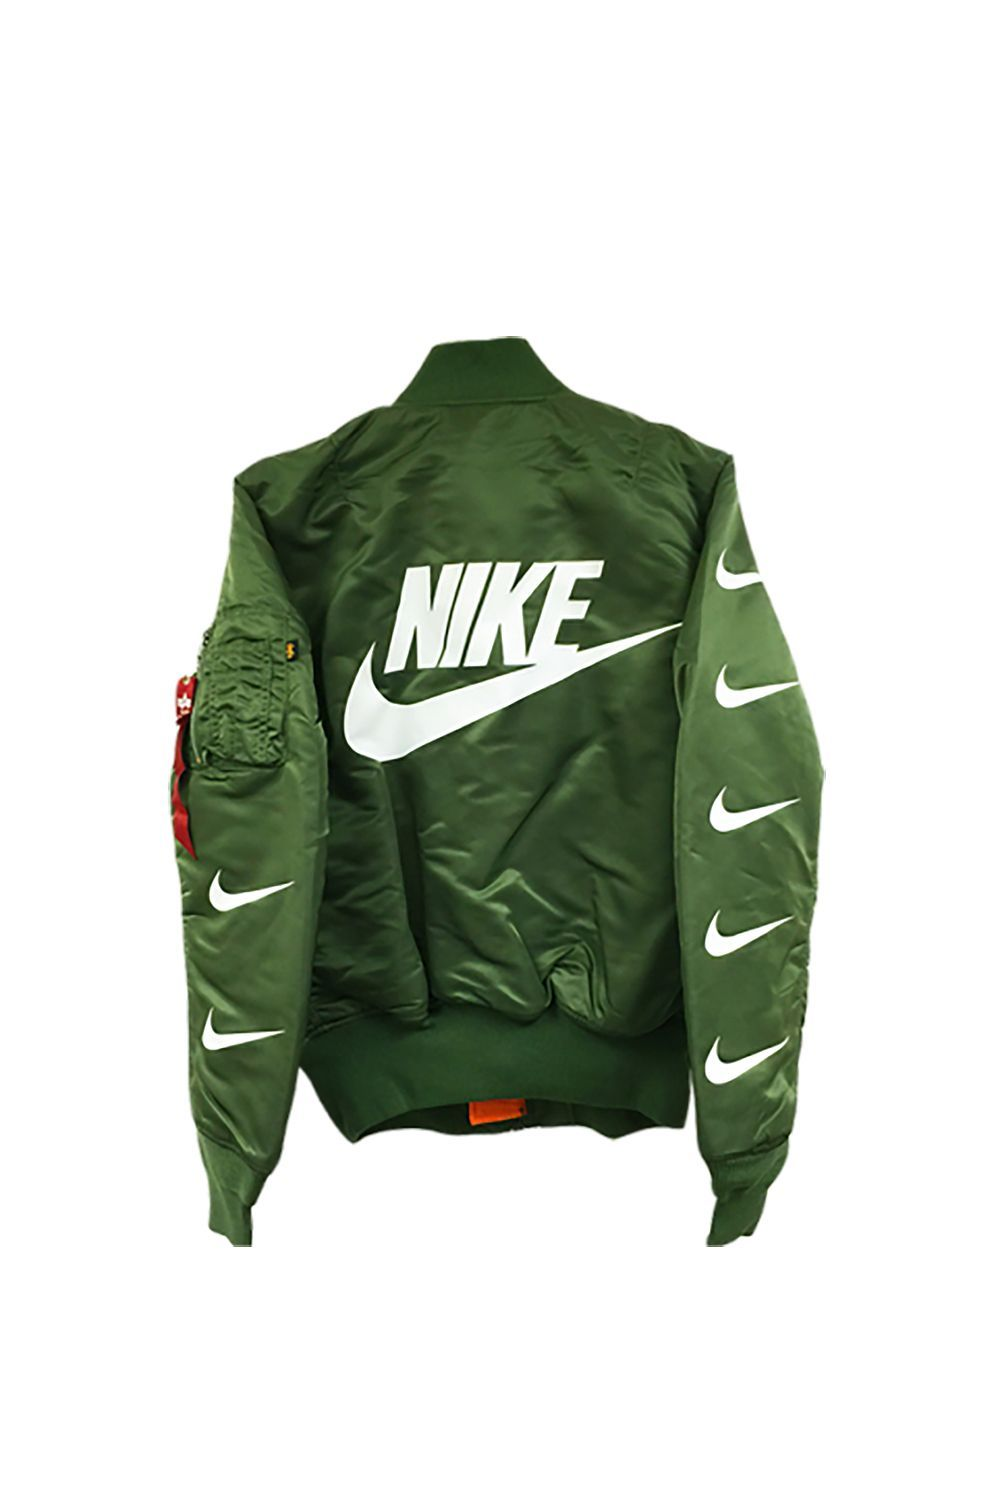 10 Bomber Jackets Under 100 So You Can Be Trendy Now And Not Regretful Later Nike Bomber Jacket Bomber Jacket Jackets [ 1500 x 1000 Pixel ]